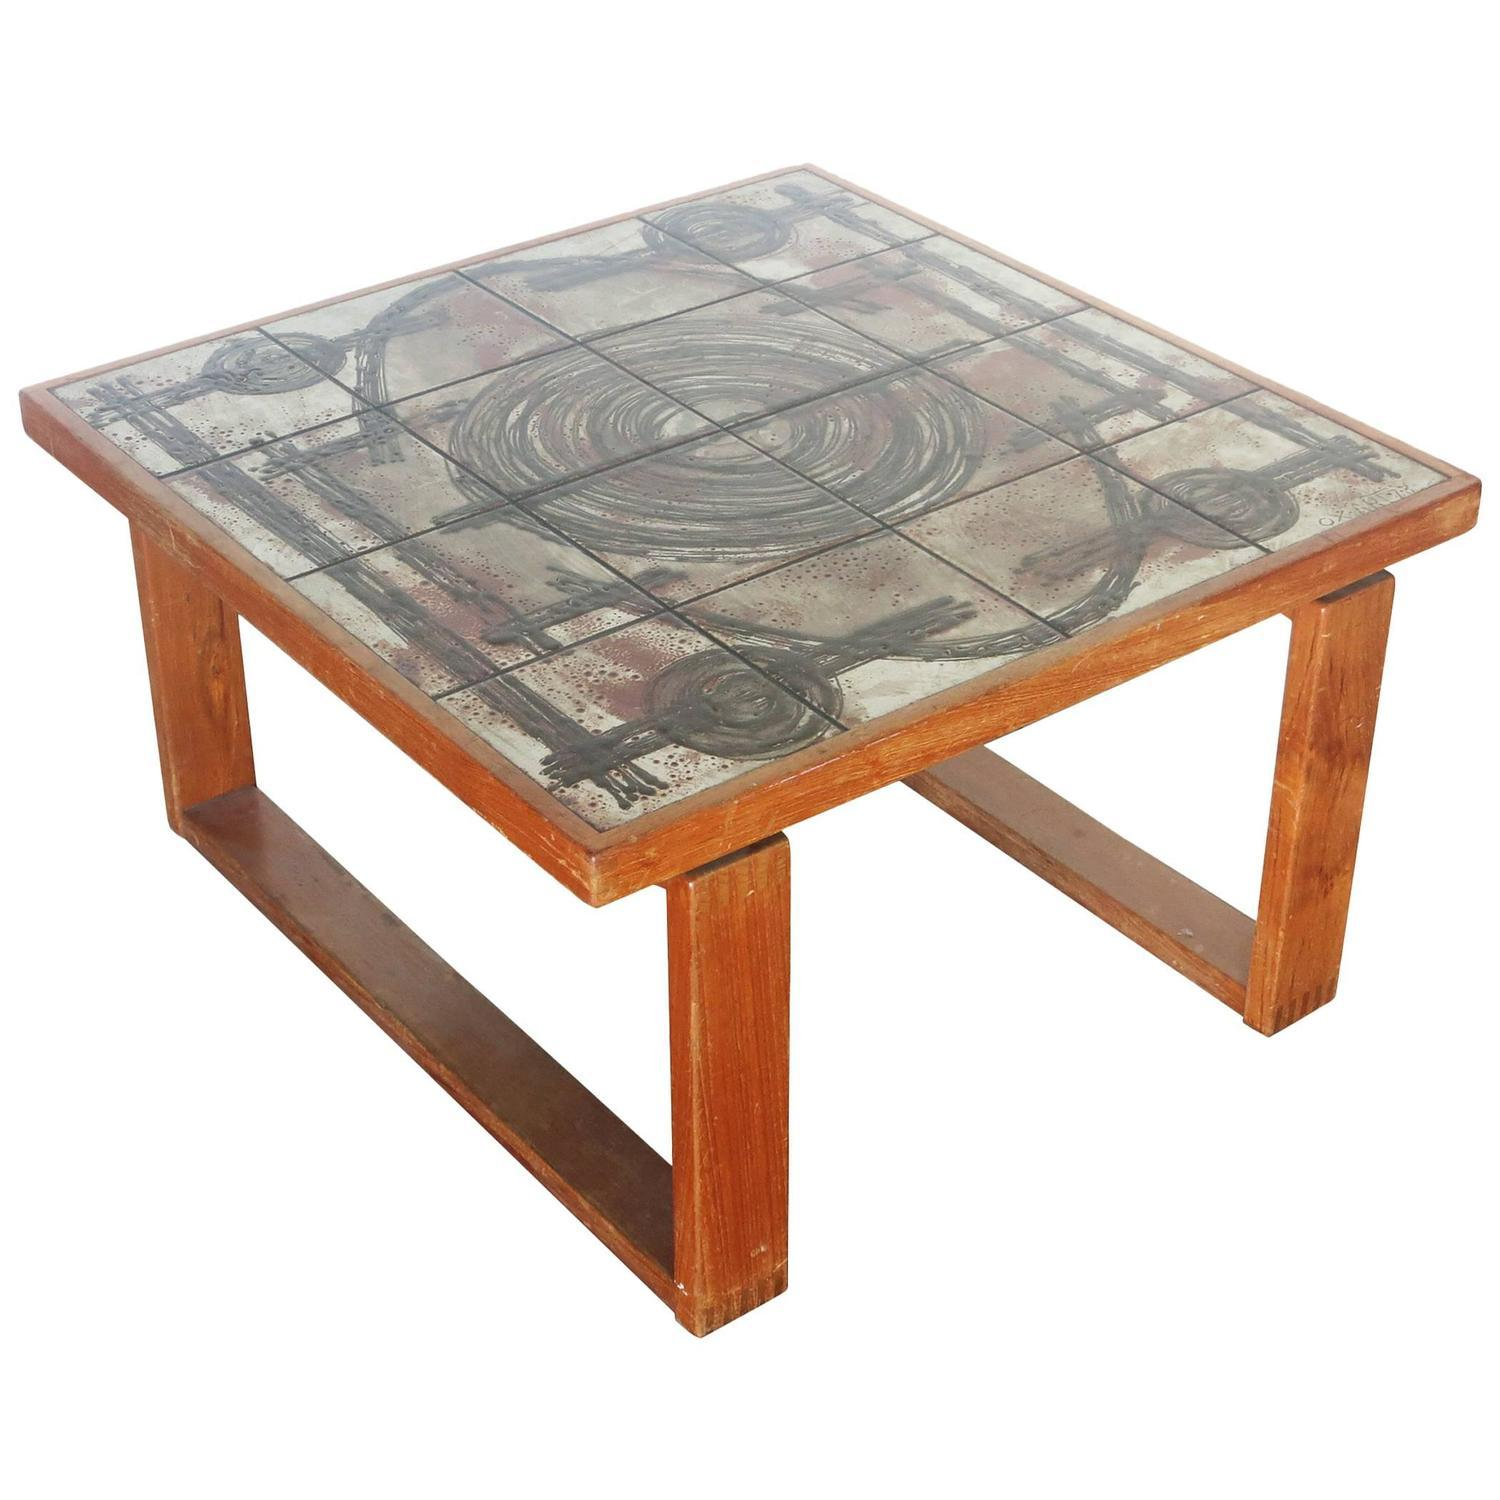 Tile top coffee table with teak base by ox art chairish geotapseo Choice Image